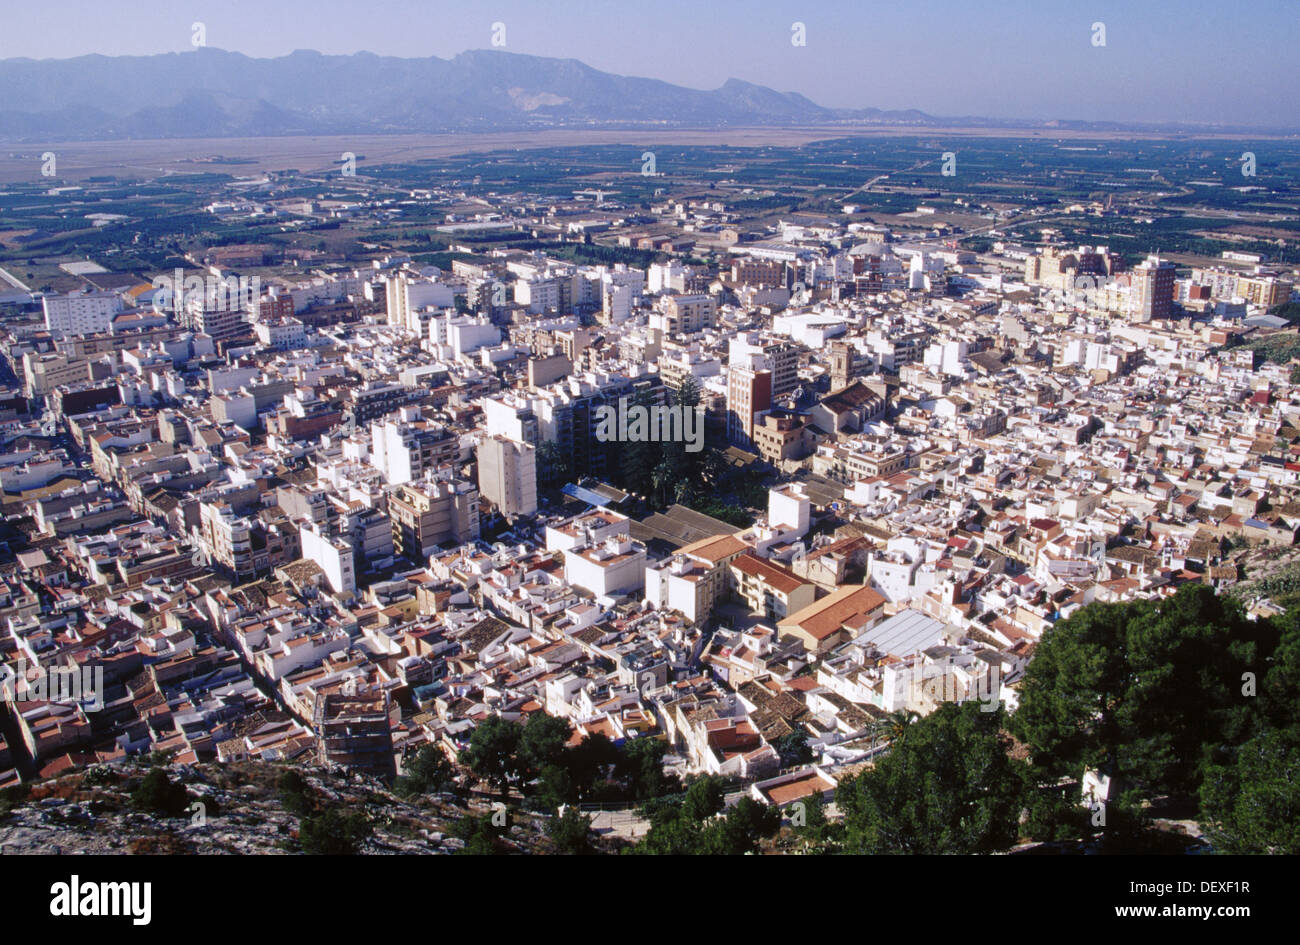 aerial view of cullera s old town valencia spain stock photo royalty free image 60818851 alamy. Black Bedroom Furniture Sets. Home Design Ideas